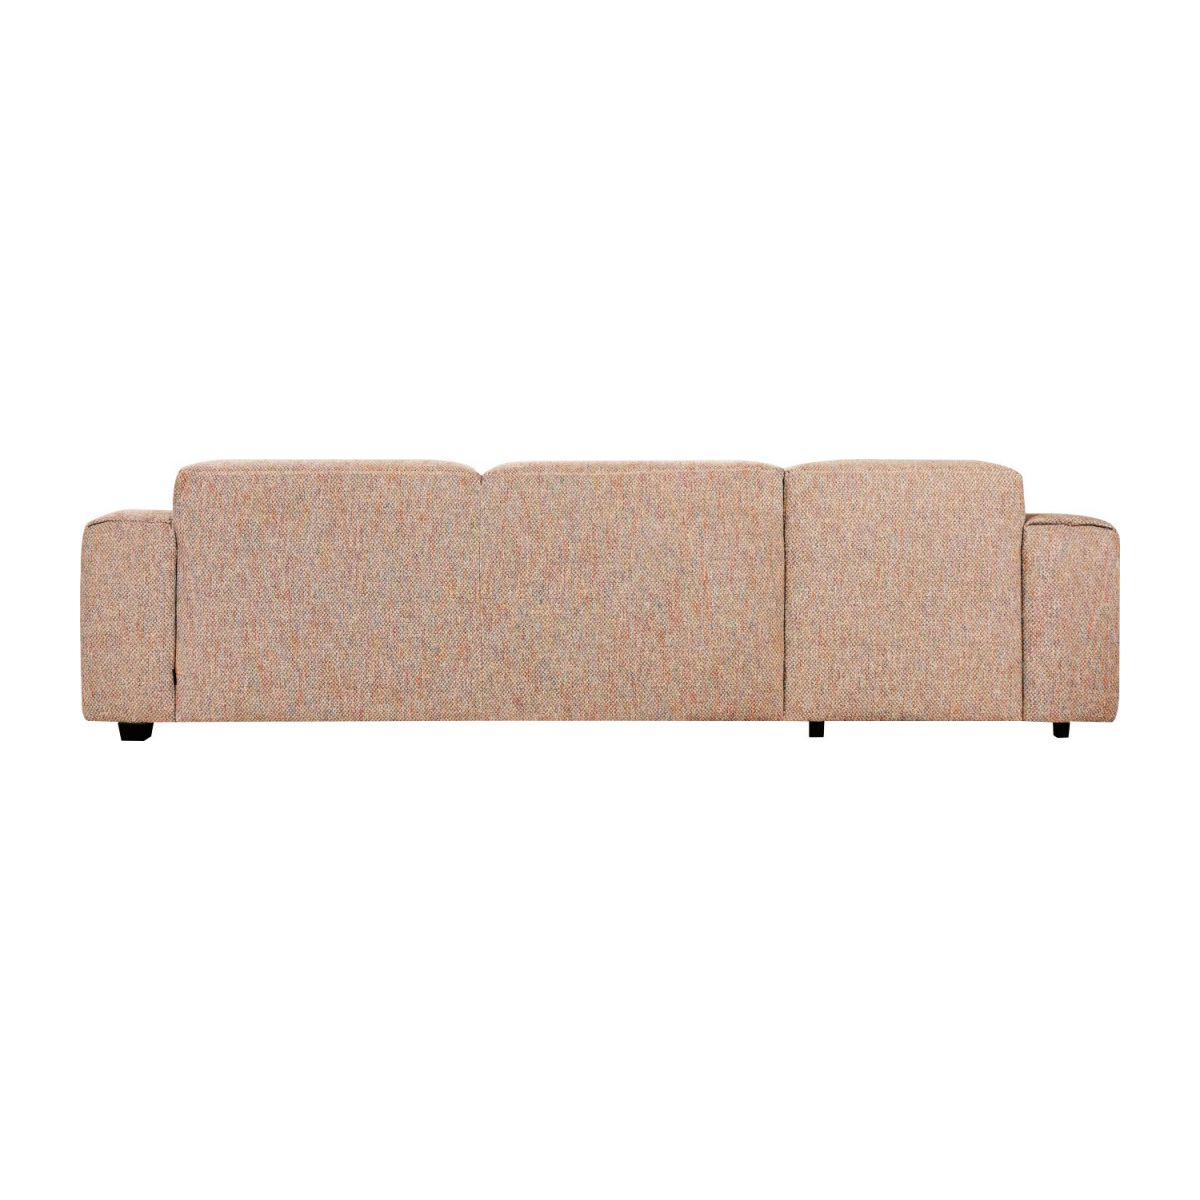 3 seater sofa with left chaise longue in Bellagio fabric, passion orange n°5